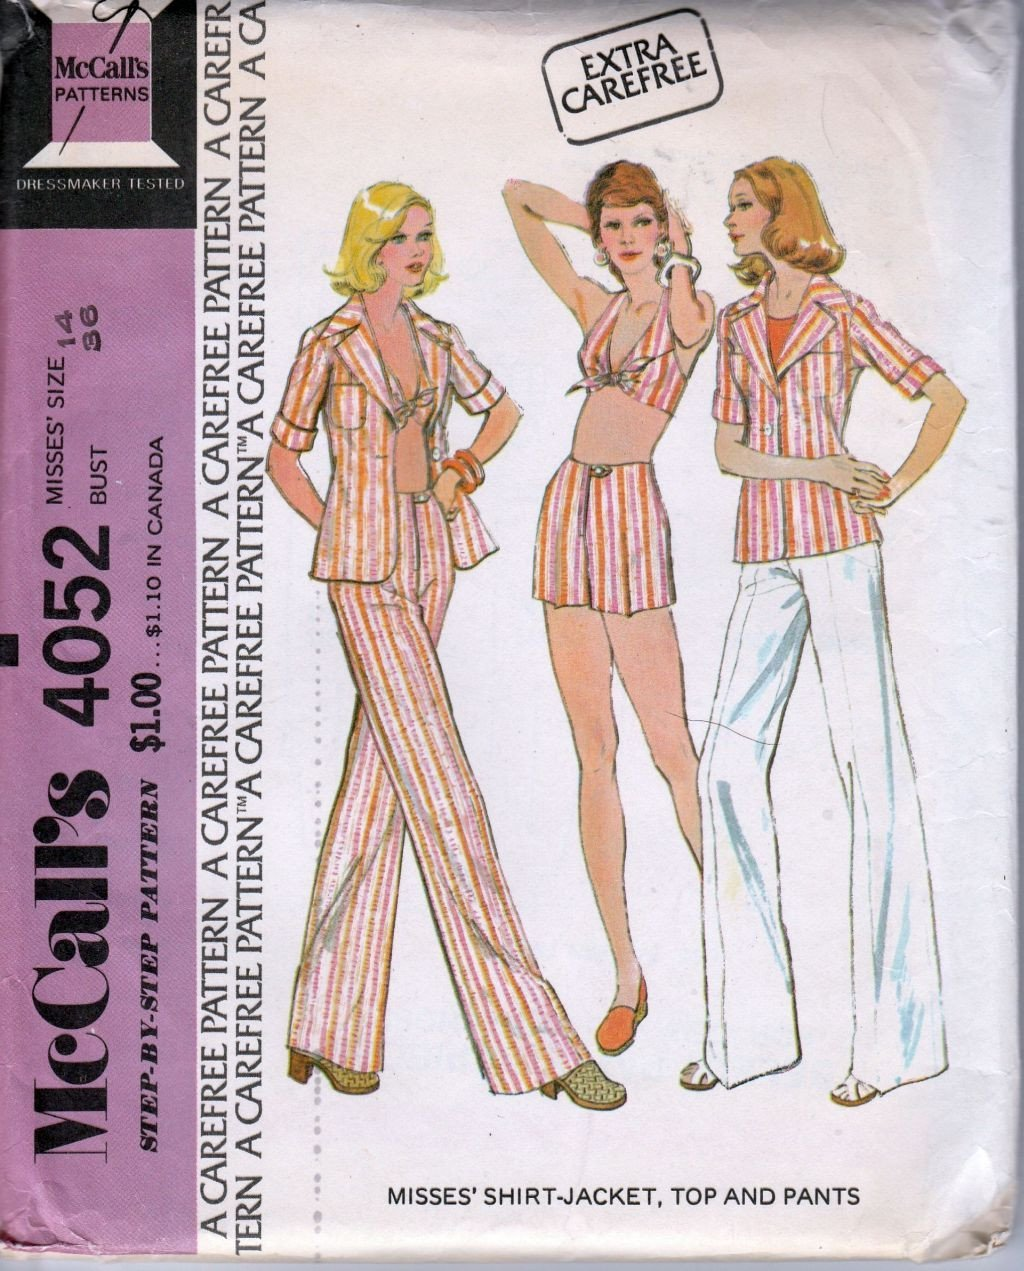 McCall's 4052 Vintage 1970's Sewing Pattern Ladies Summer Halter Top Shirt Jacket Pants Shorts - VintageStitching - Vintage Sewing Patterns